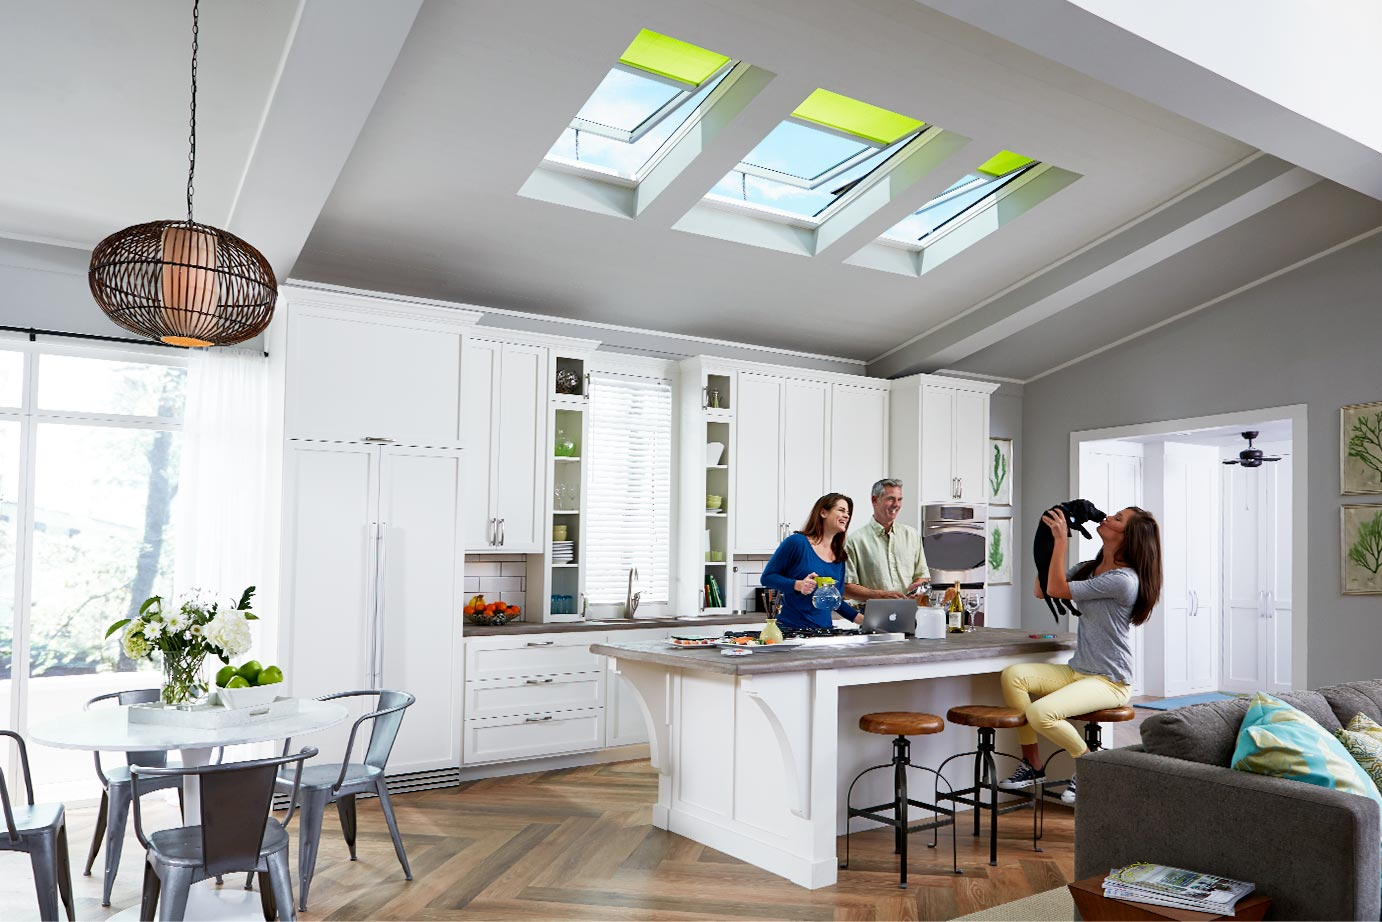 kitchen green blinds?h=922&la=en&w=1382&cc=grid_12&key=145917965341898&sw=960 velux frequently asked questions velux klf 100 wiring diagram at pacquiaovsvargaslive.co